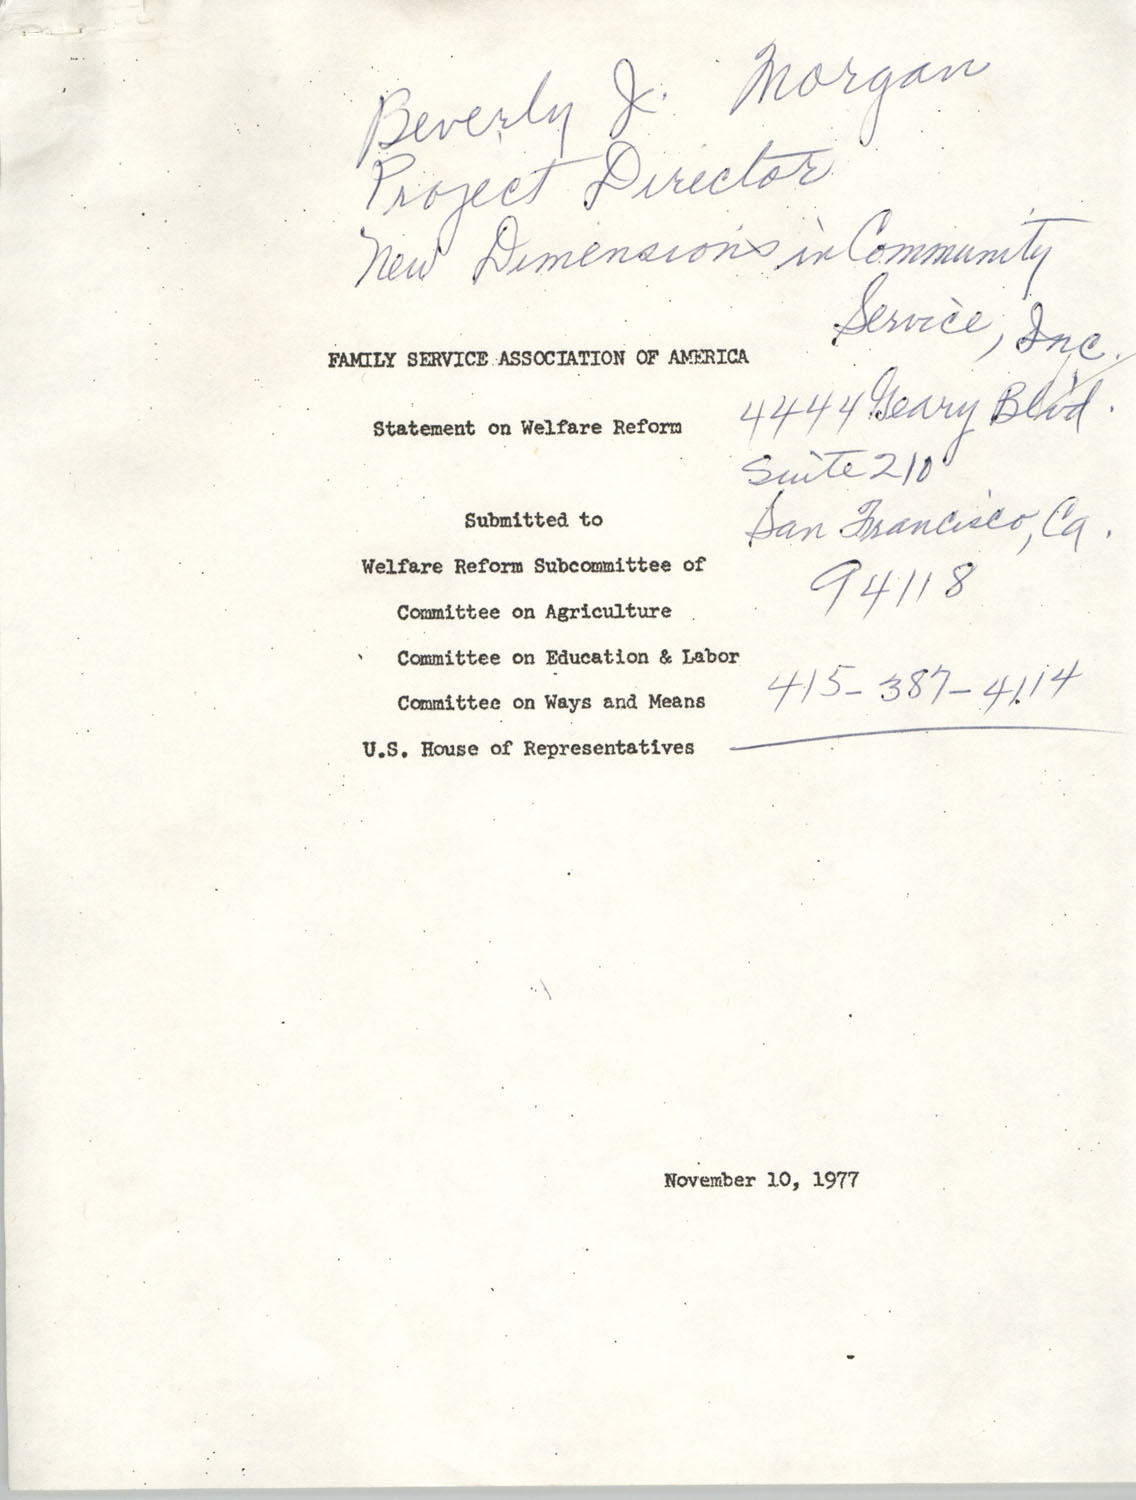 Statement of Welfare Reform, Family Service, November 10, 1977